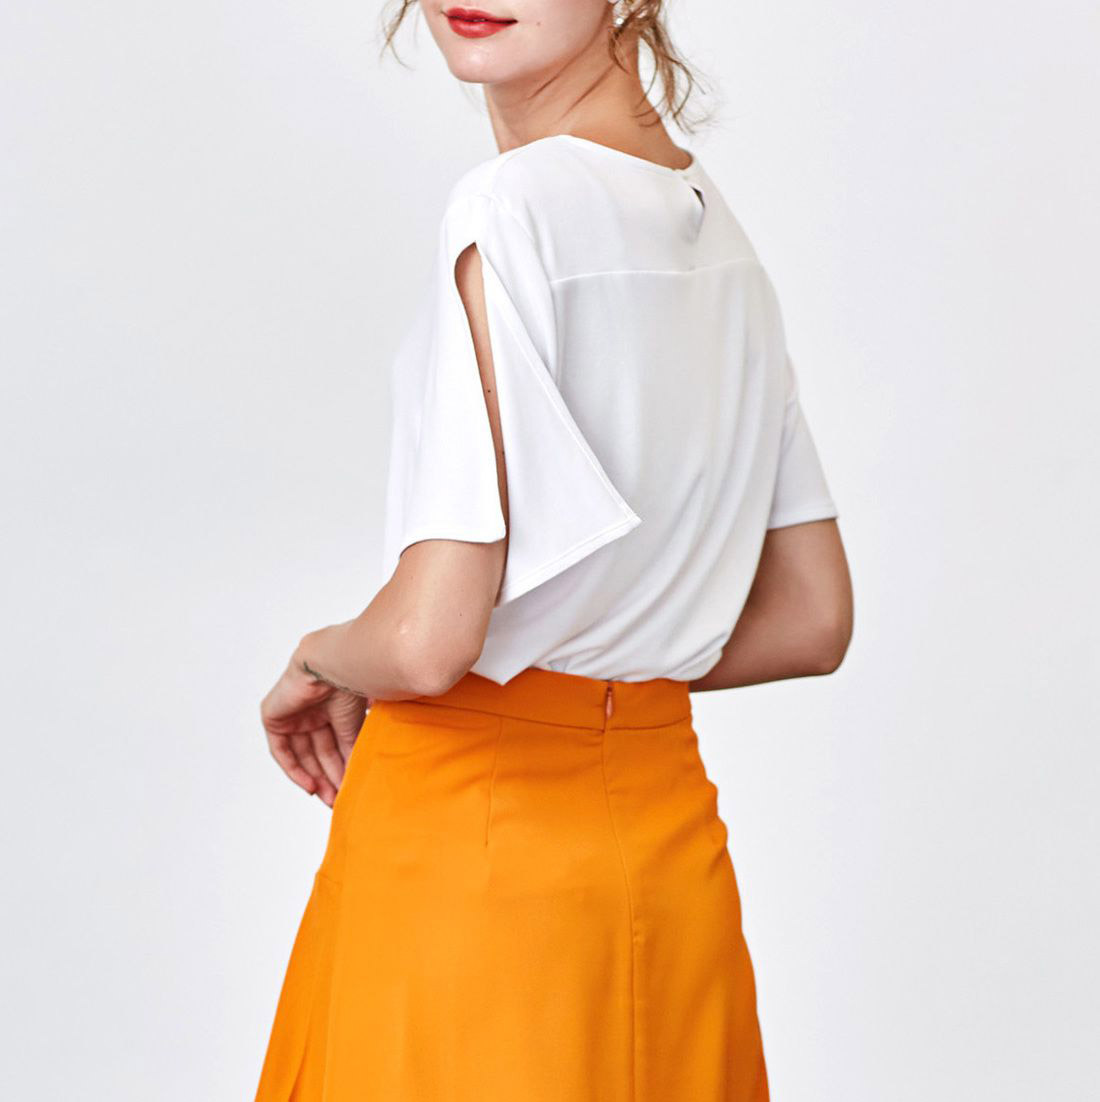 New Joker Short - Sleeved White T - Shirt Female Sheet Sleeve Loose Round Collar With A Base Summer